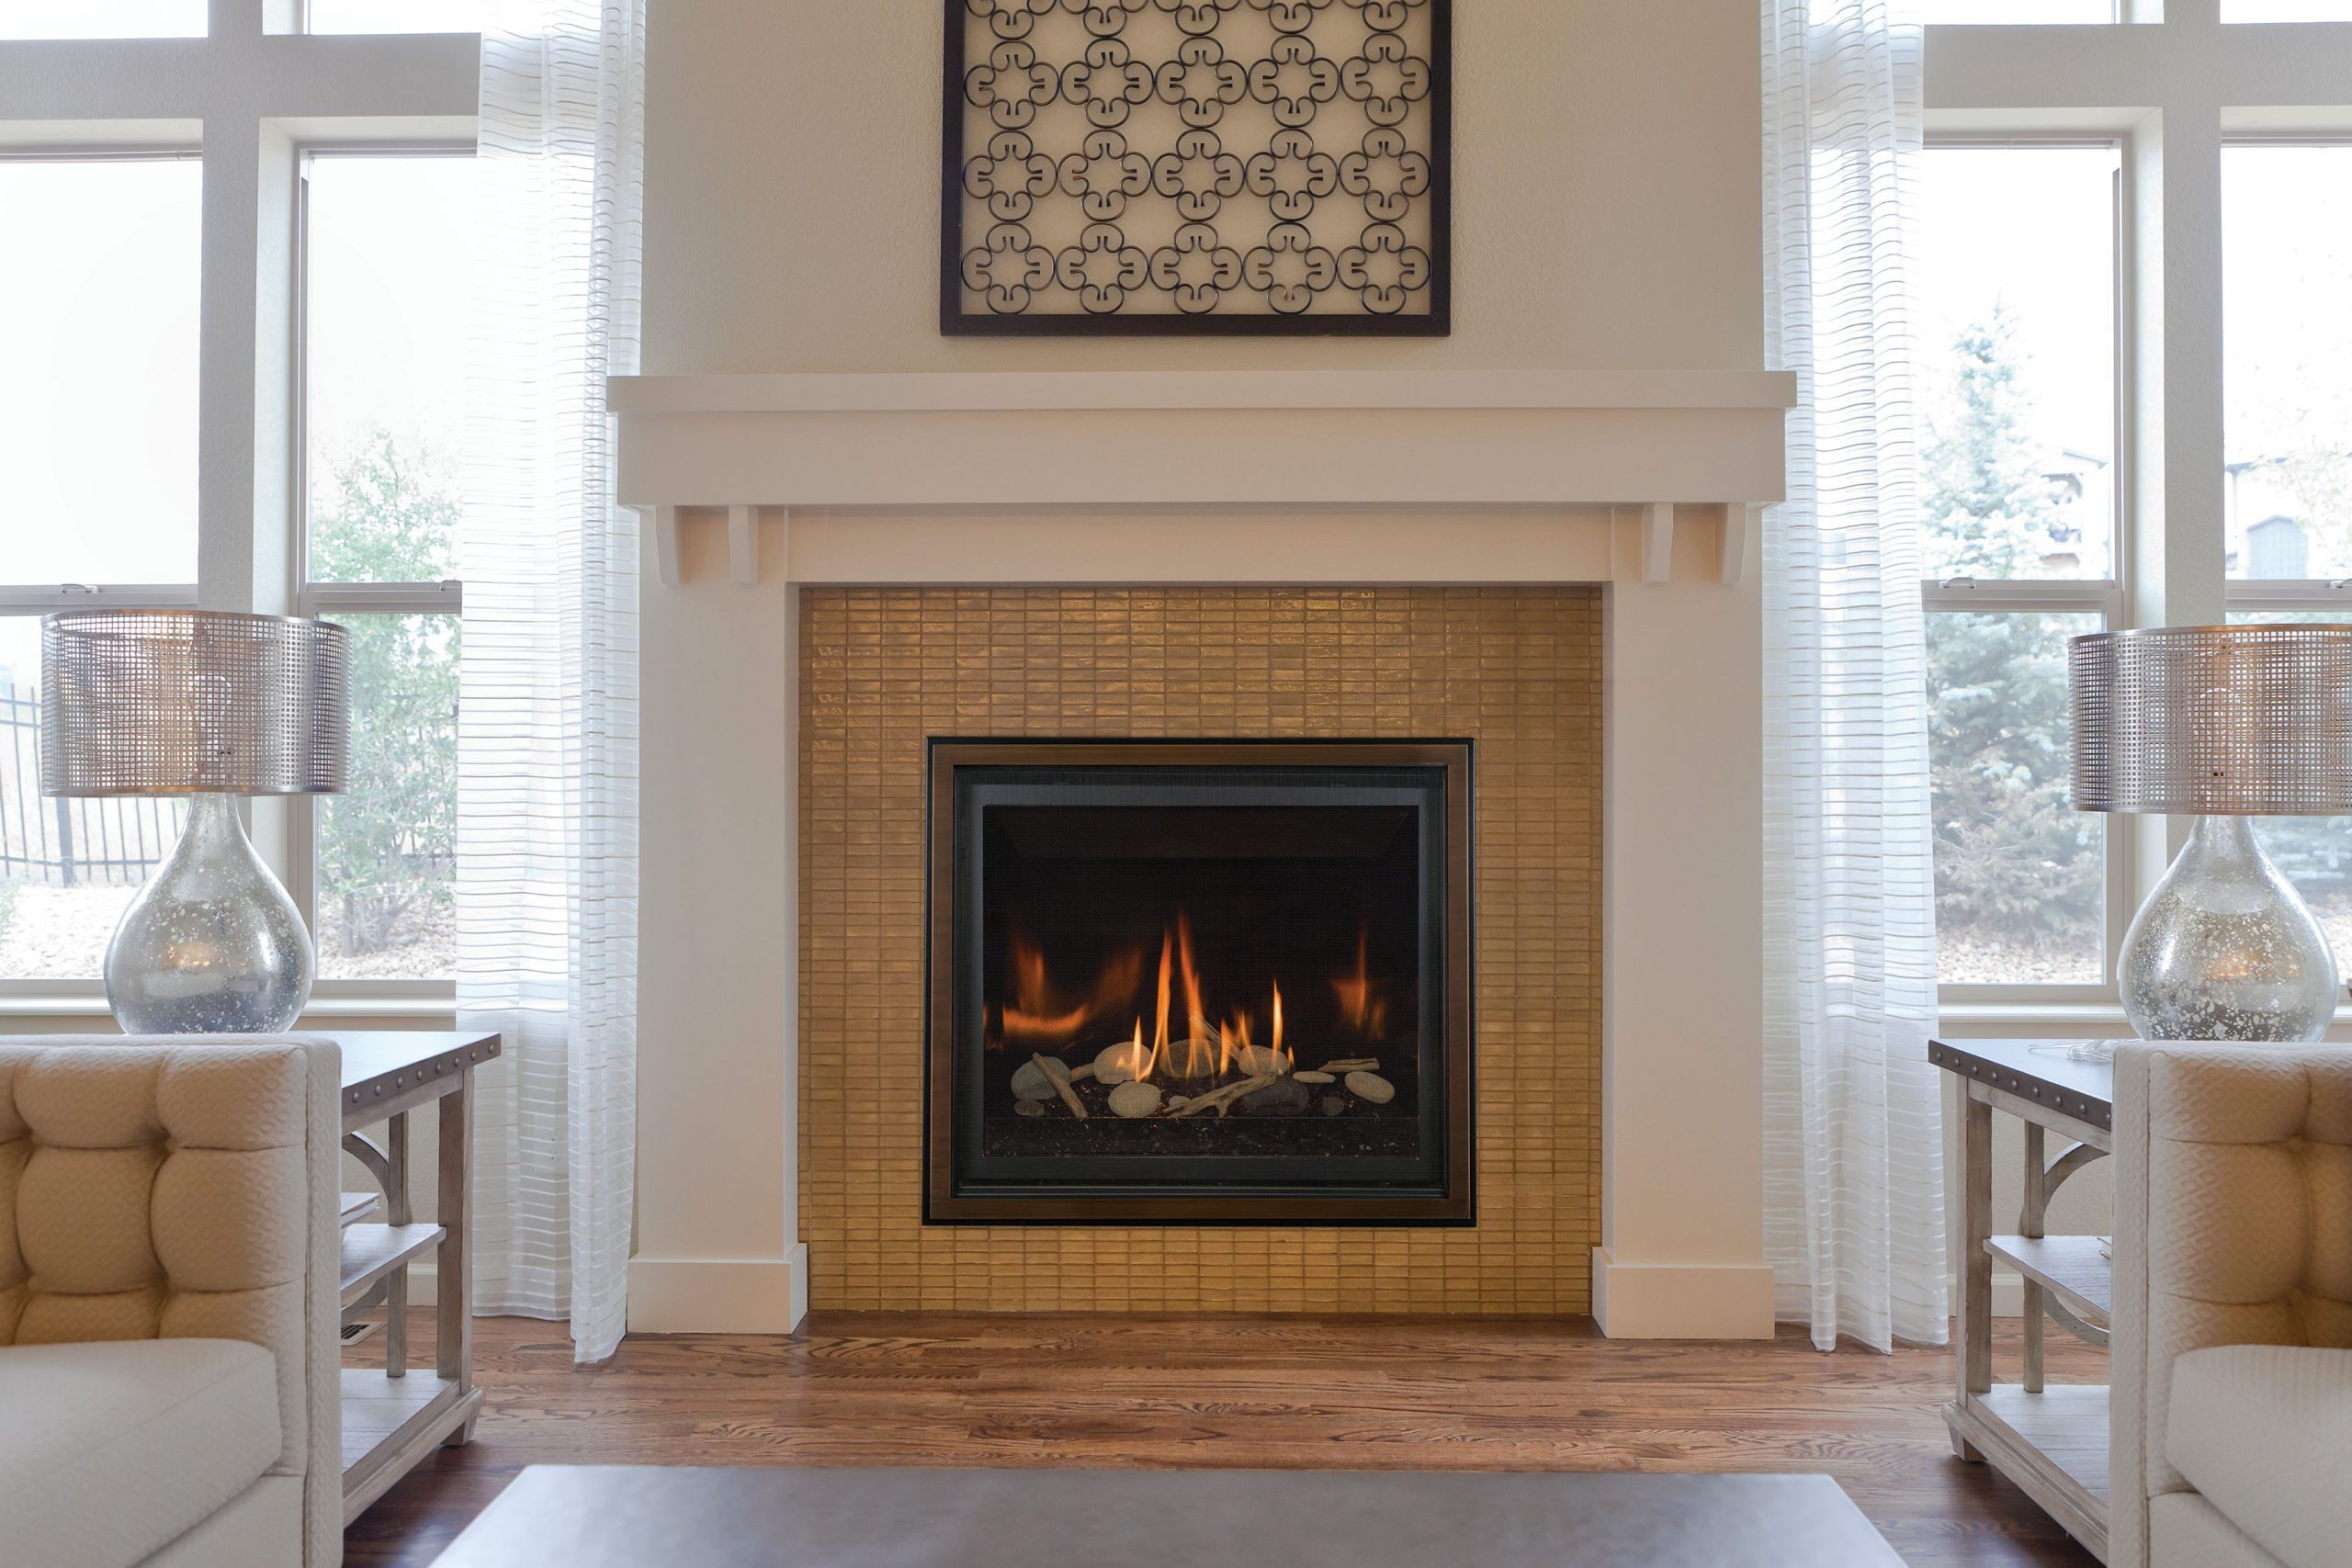 When is the Best Time of Year to Install a Fireplace?